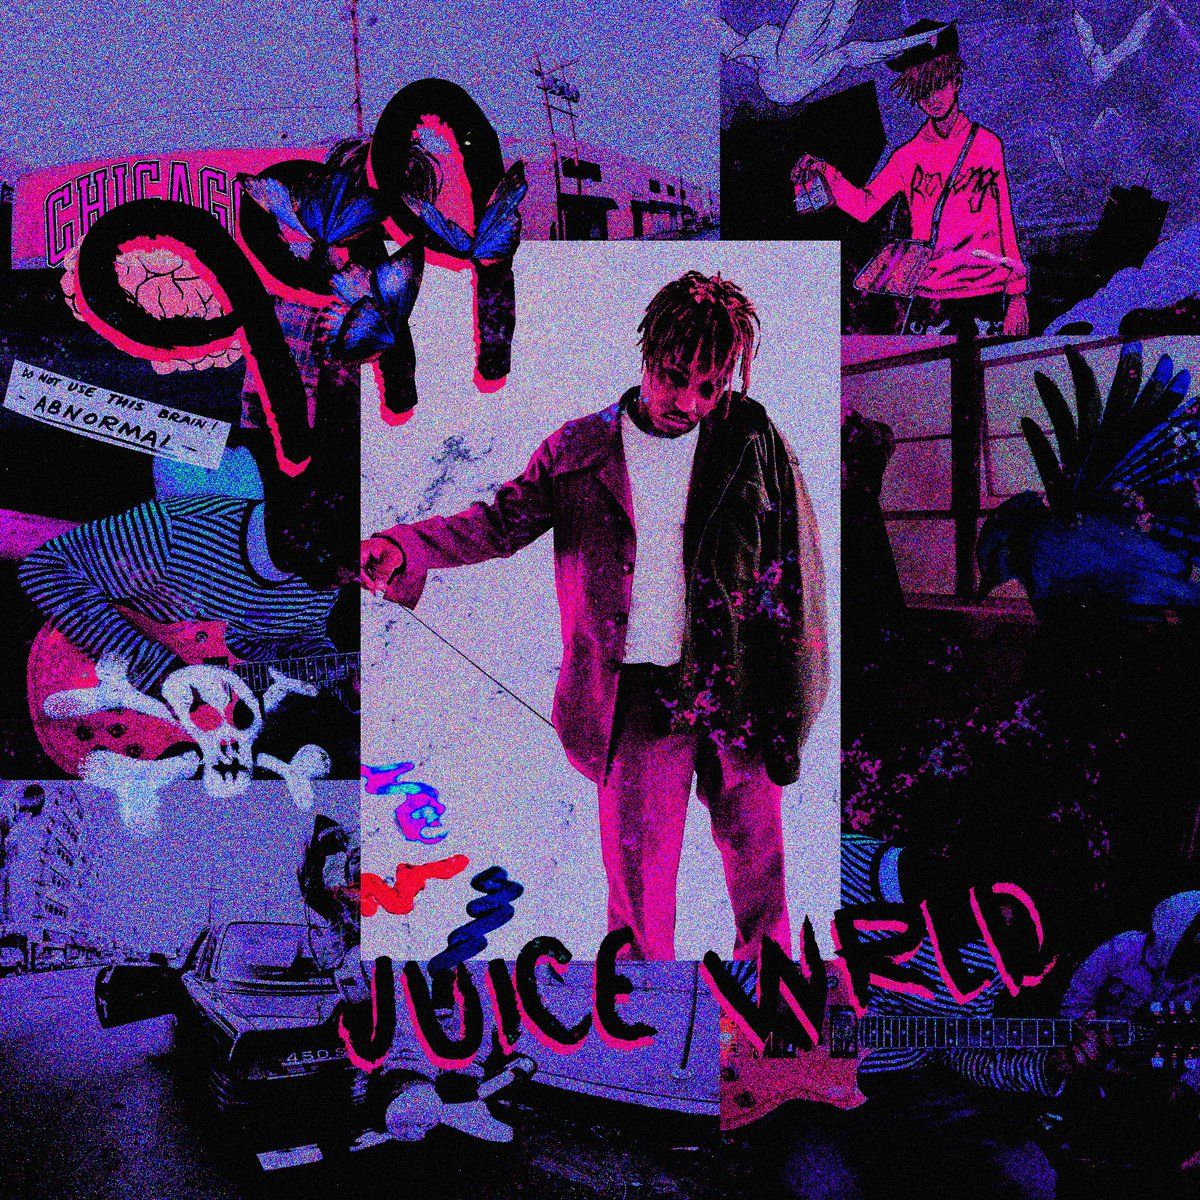 Juice Wrld Cartoon Wallpapers - Top Free Juice Wrld Cartoon